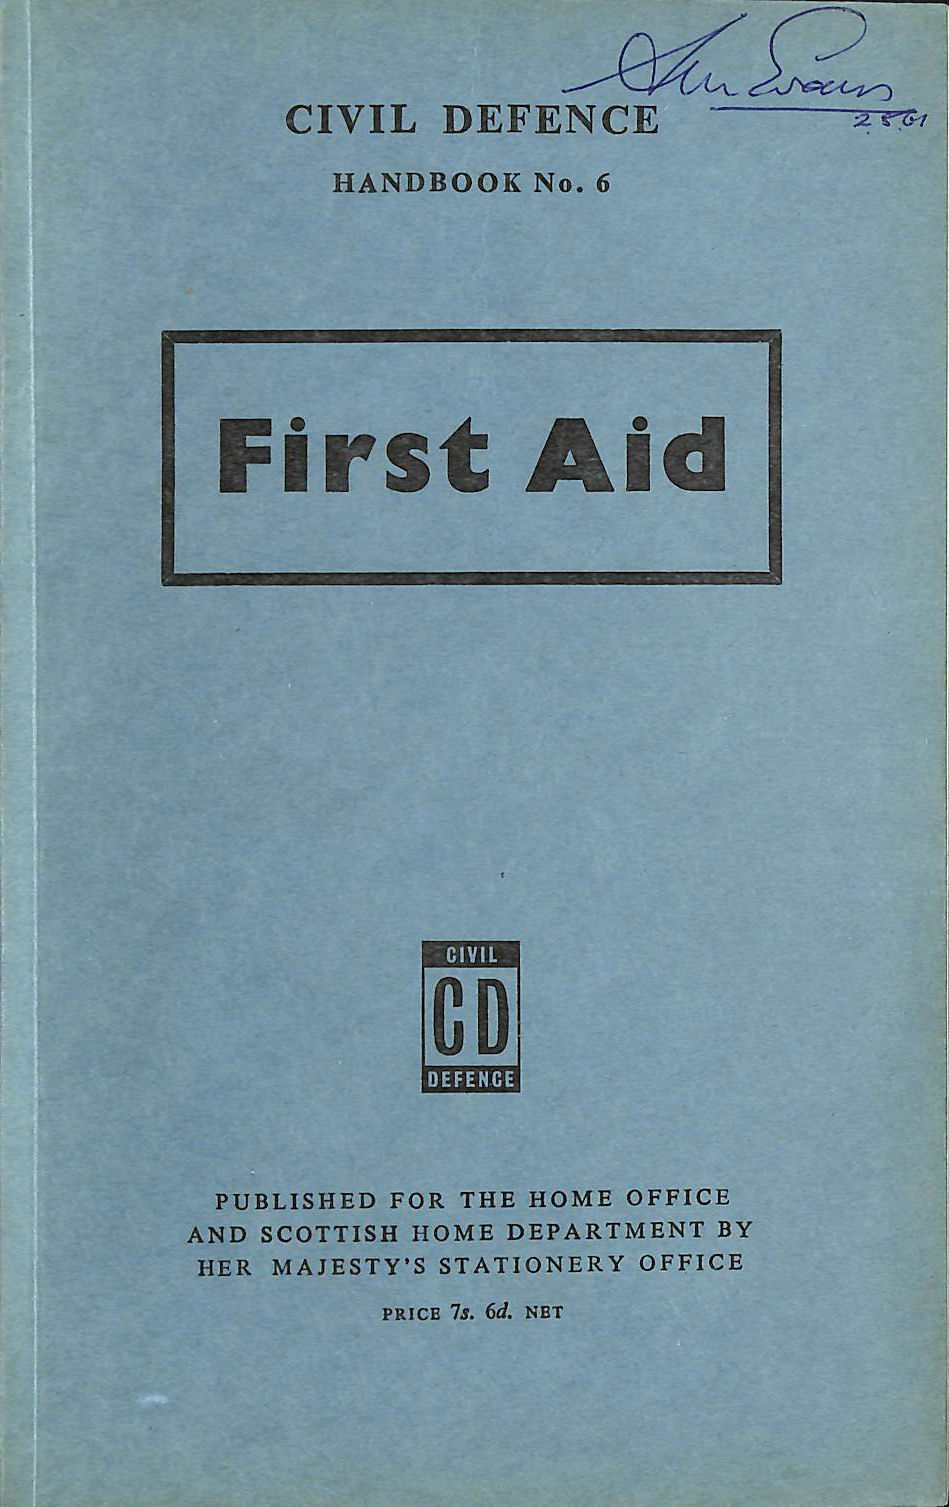 Image for Civil Defence Handbook No. 6: First Aid